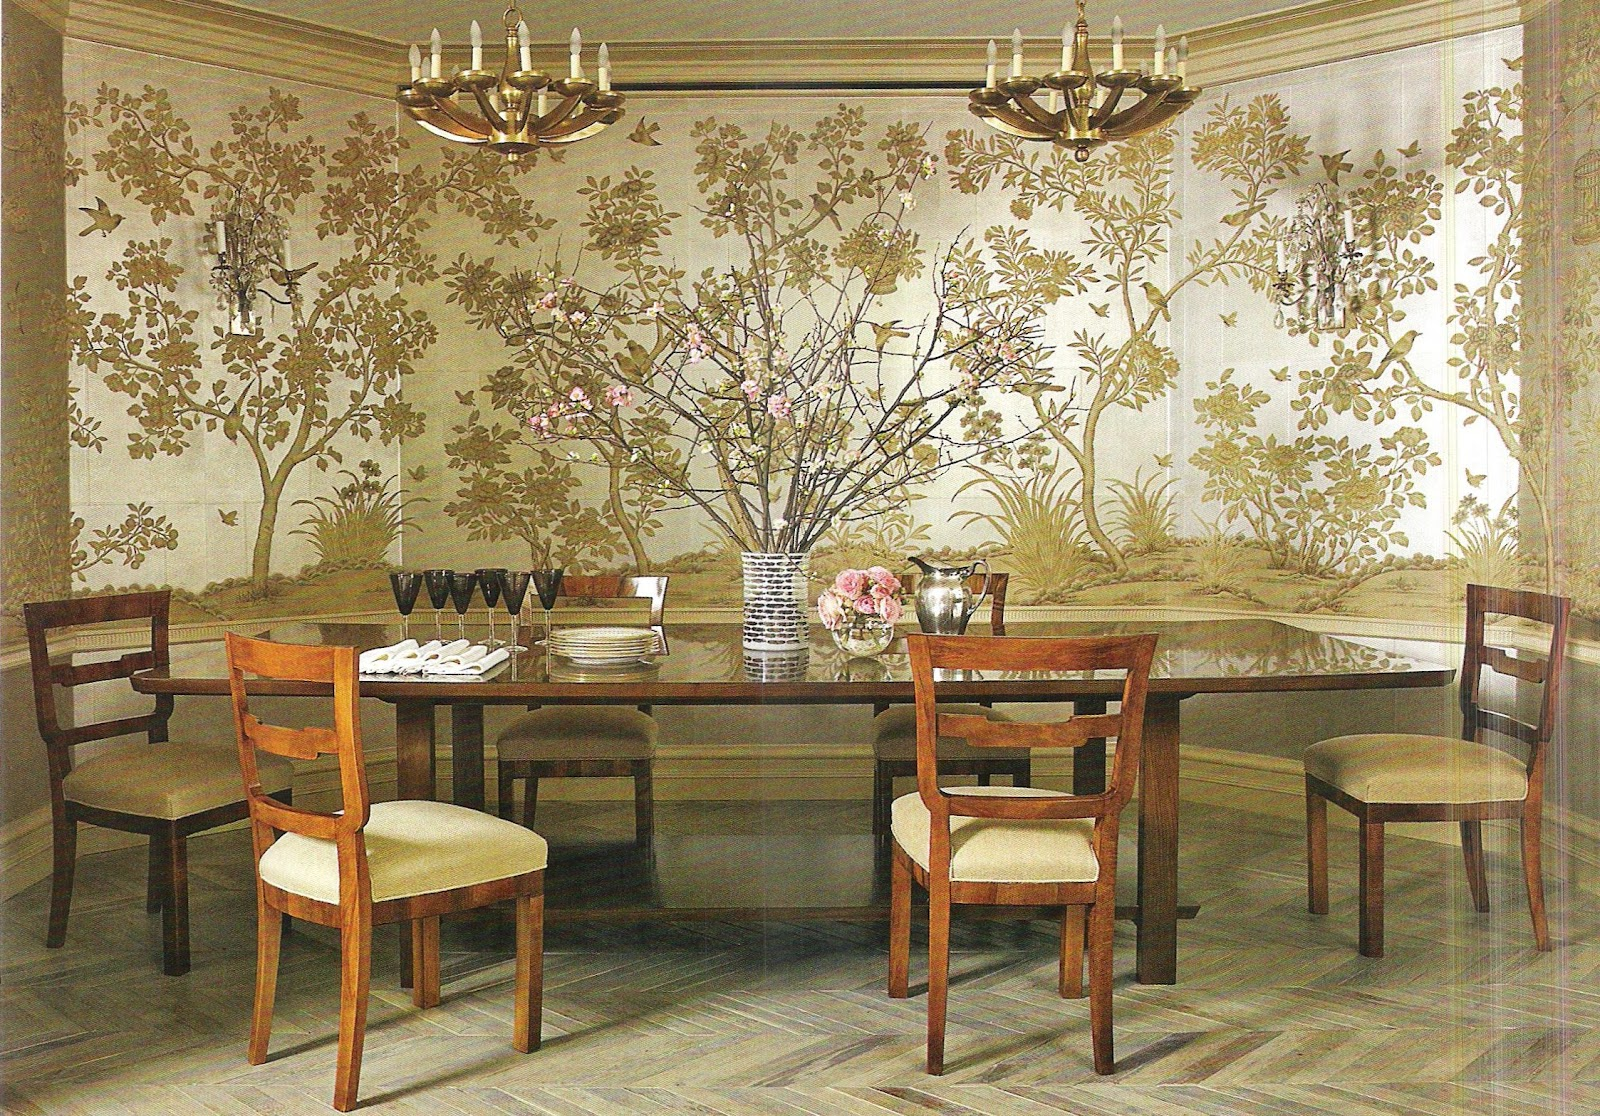 download gracie wallpaper chinoiserie wwwhigh definition 1600x1116